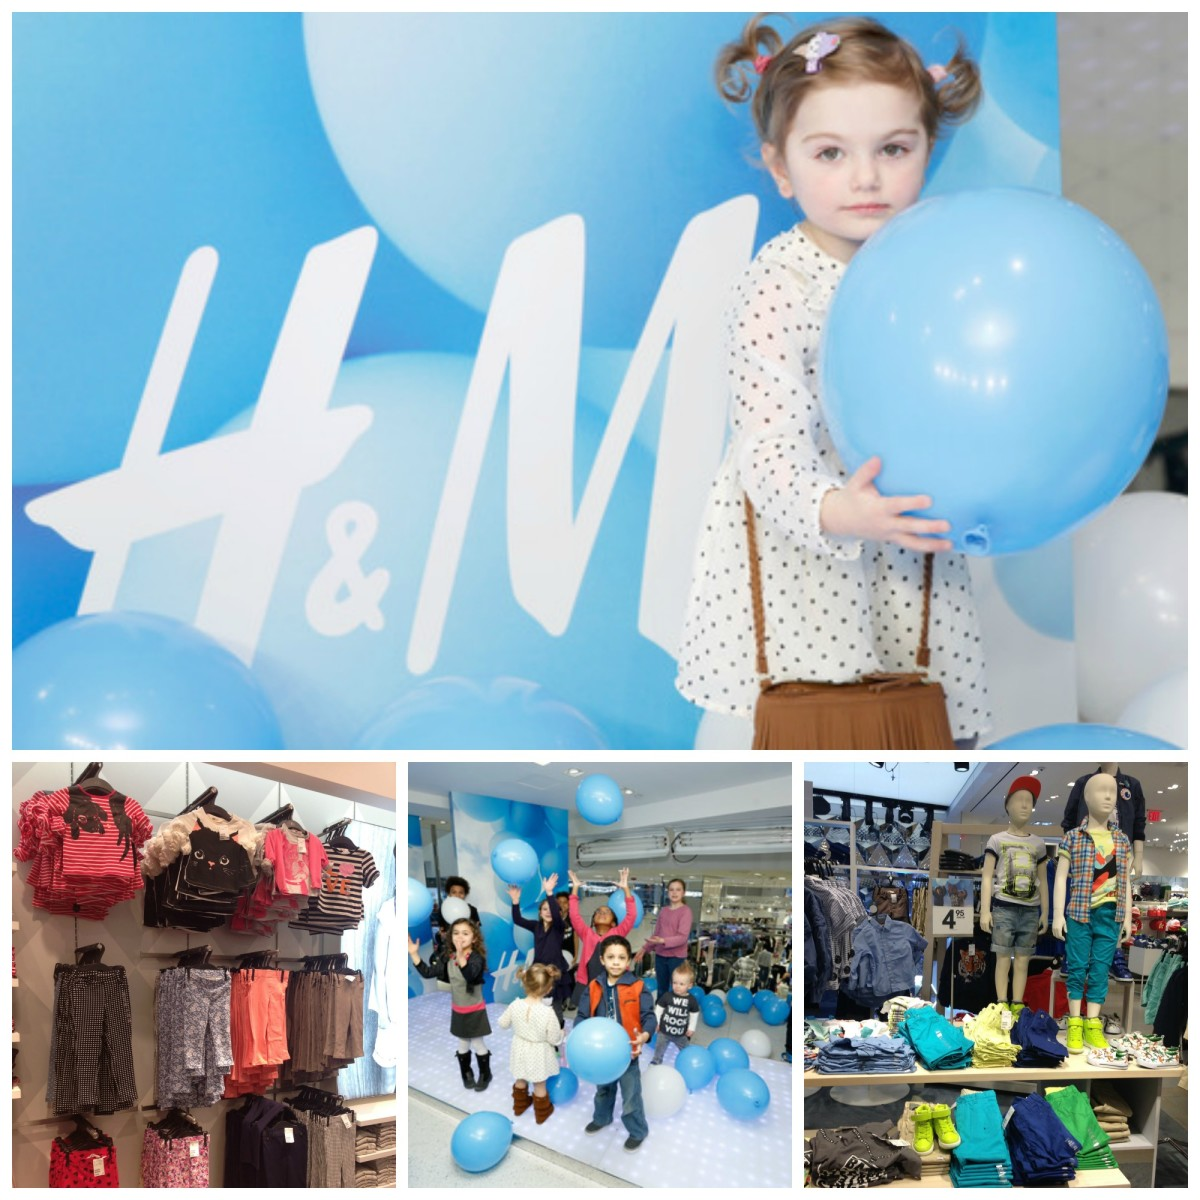 h&m hosts kids spring event